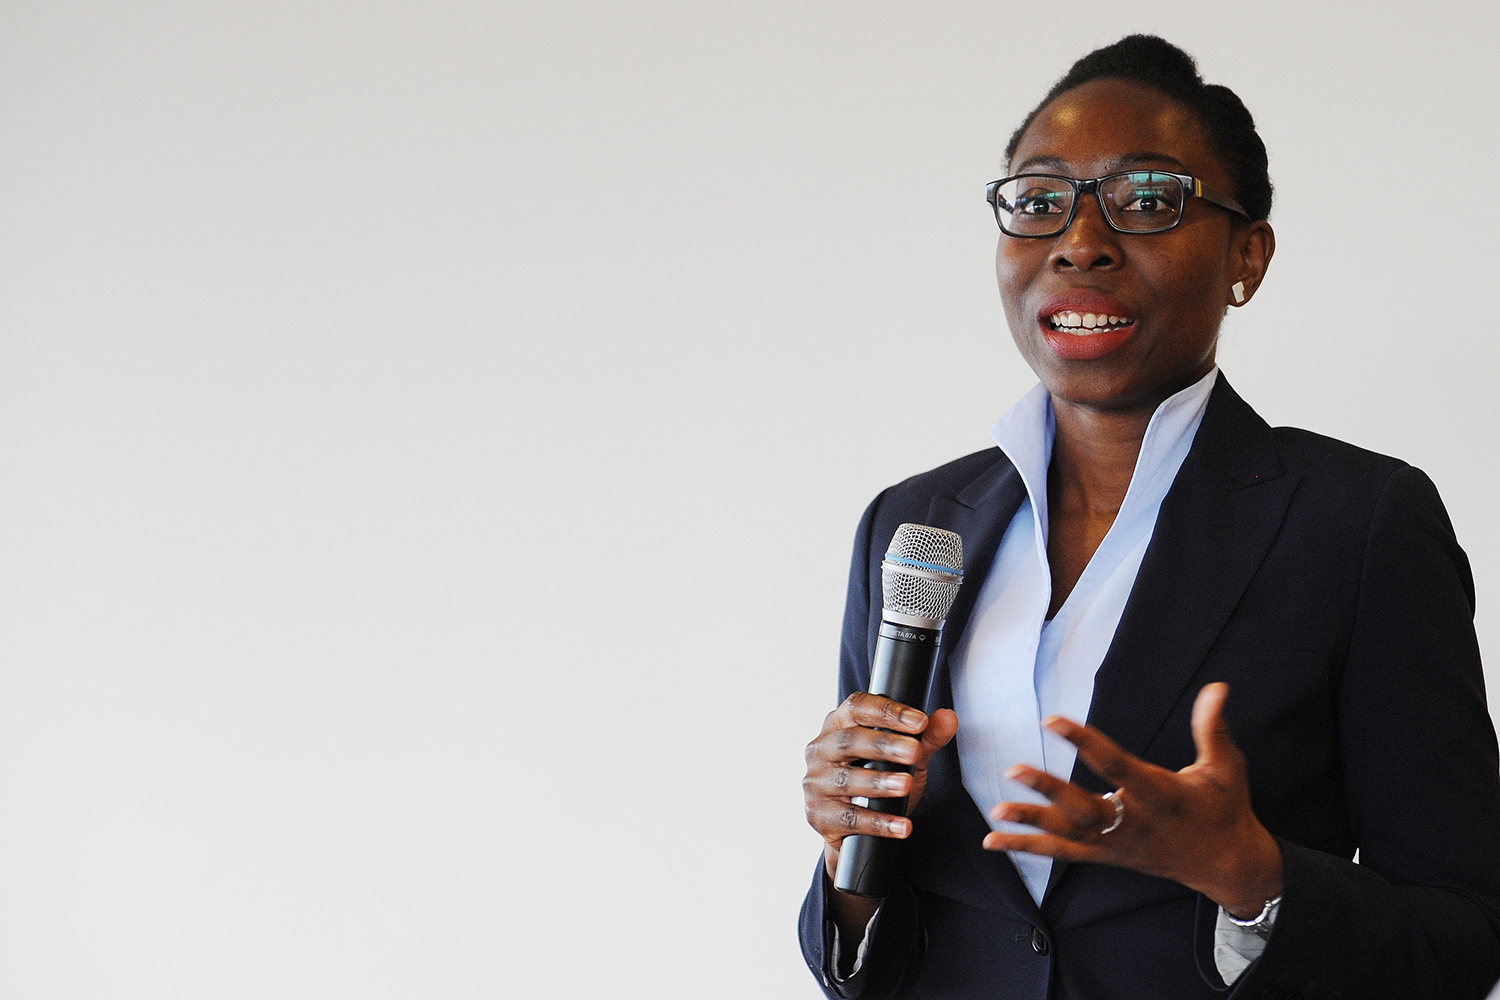 Hirut Mcleod '00, a management consultant at The World Bank, delivered the keynote address. Mcleod has experience coaching leaders at all levels in Africam Asian and the Balkan region. She served as elected alumna trustee of the Wesleyan Board of Trustees from 2012-2014.